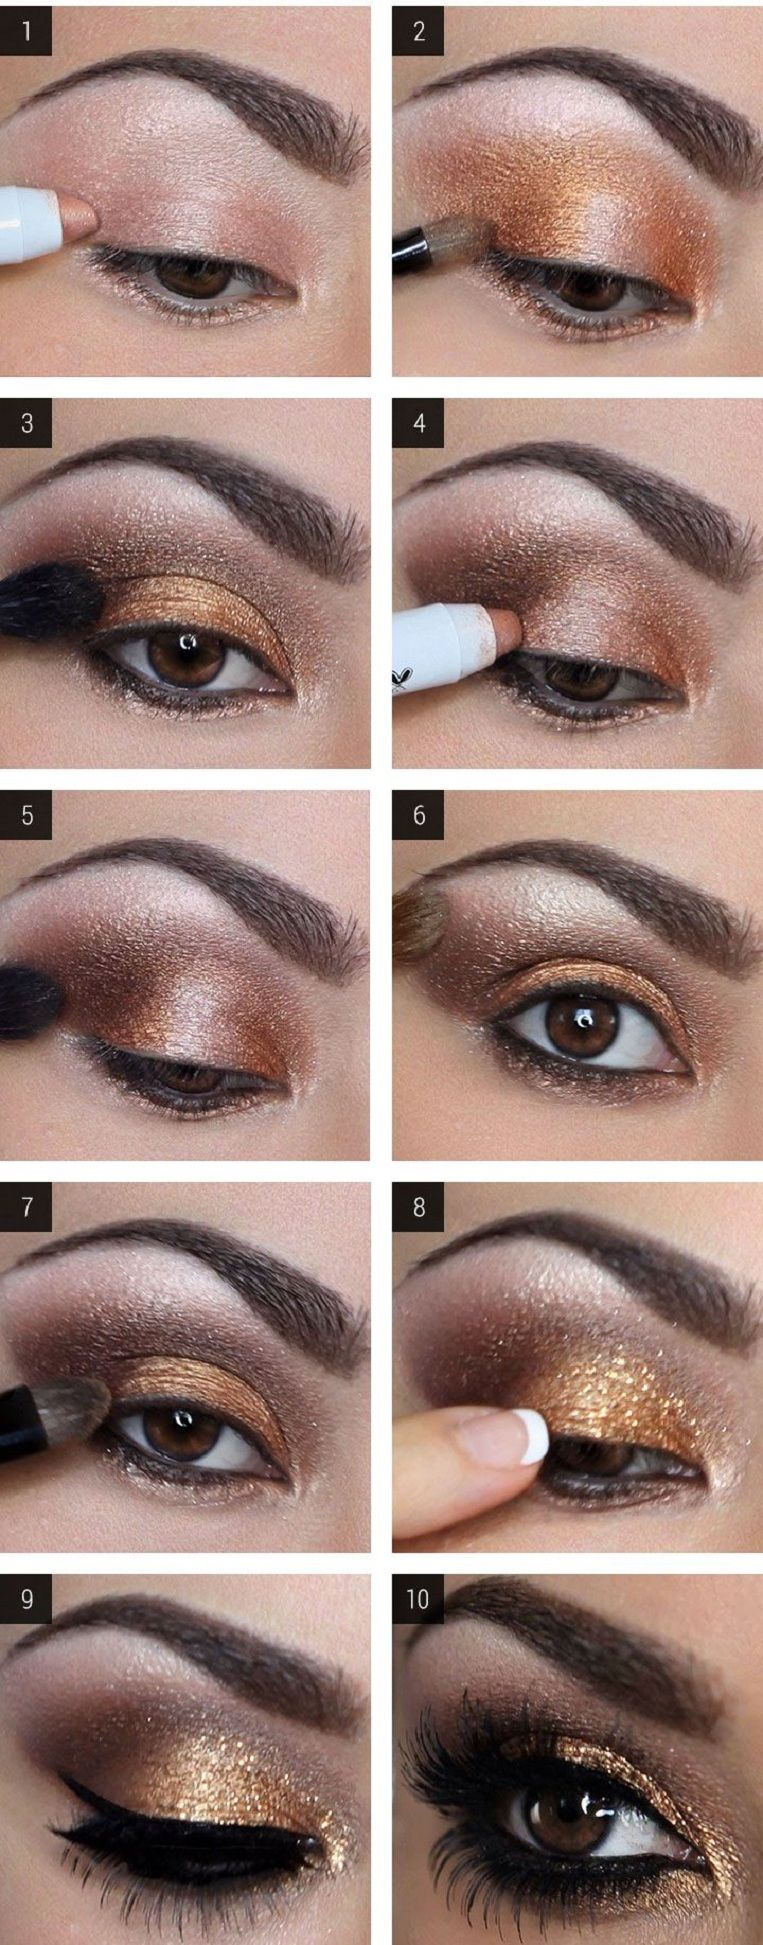 Brown eyeshadow tutorials for a more seductive look 5g 7631945 how to get dramatic gold glitter eyesahaha finally the gold eye tutorialhow to i have been looking for to do the look and not look like a frothball baditri Images